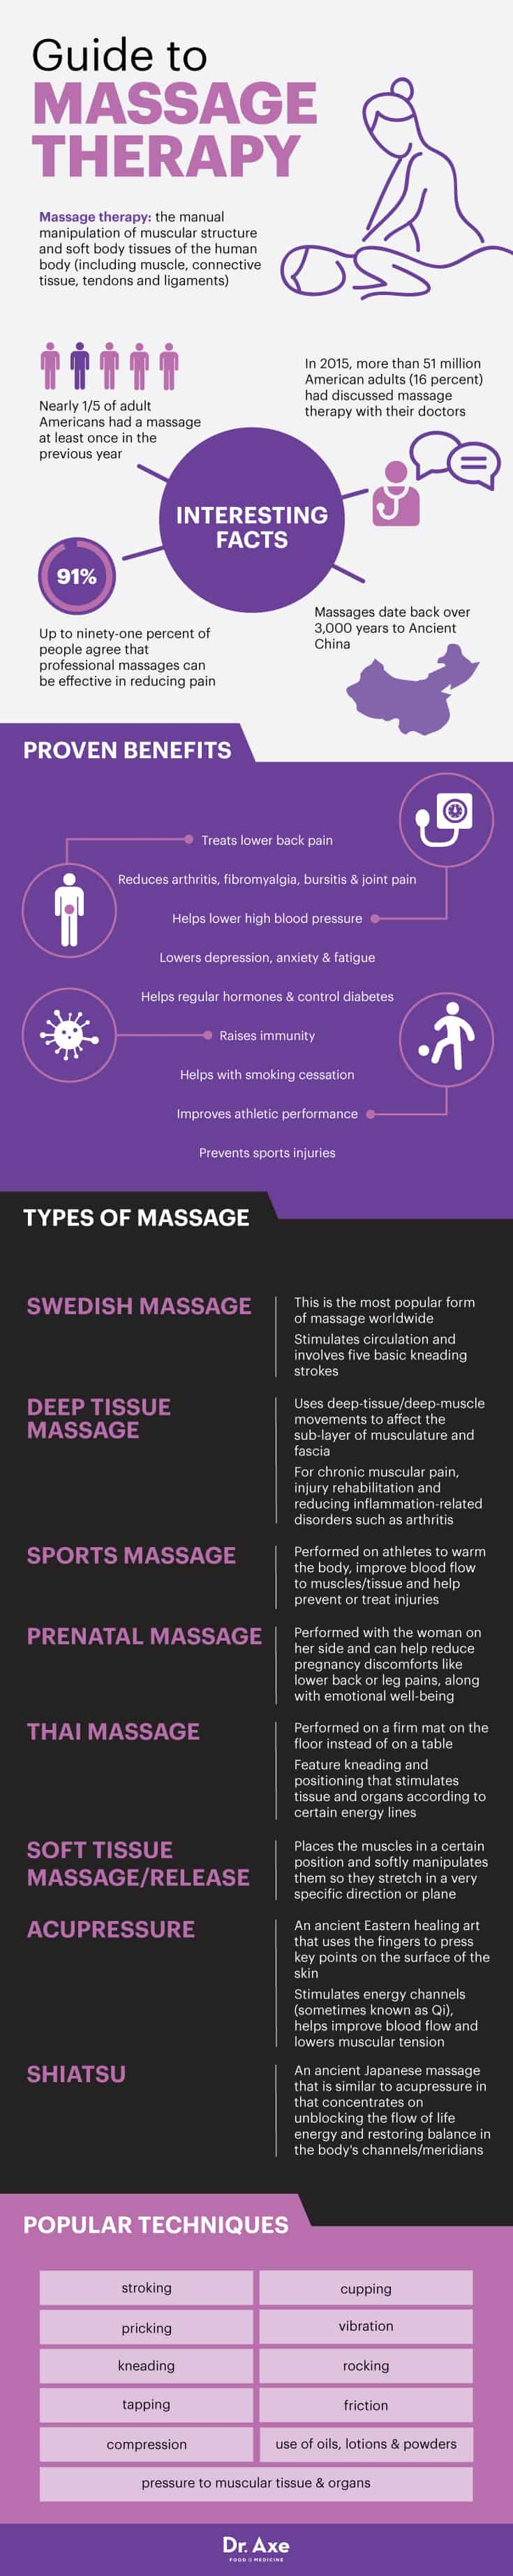 Guide to massage therapy - Dr, Axe